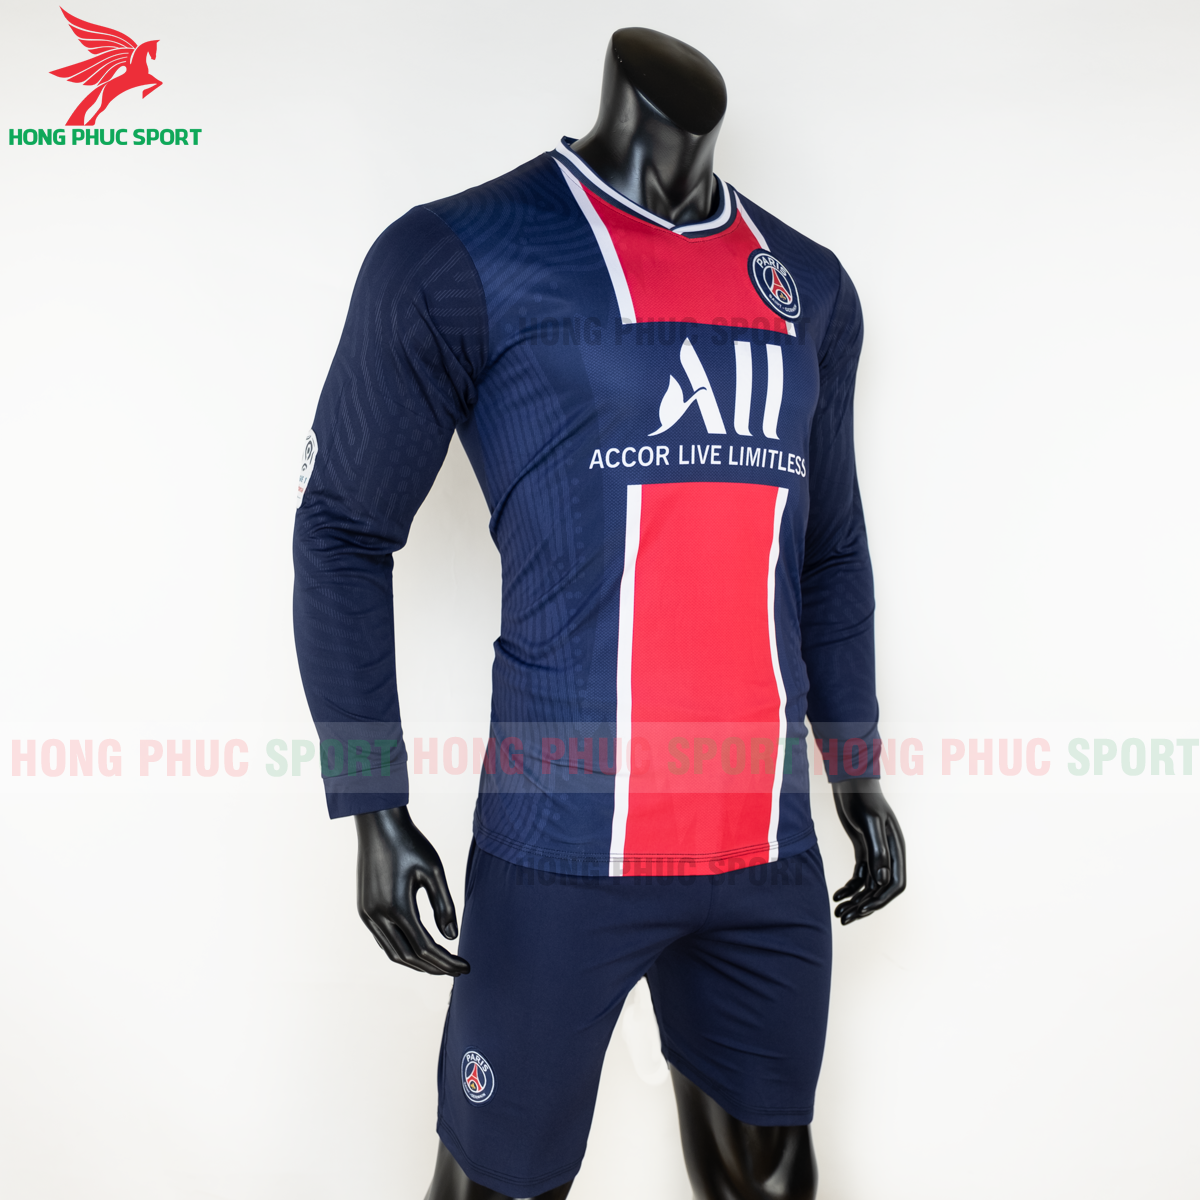 https://cdn.hongphucsport.com/unsafe/s4.shopbay.vn/files/285/ao-dai-tay-psg-2020-san-nha-6-5f8fe12220b3e.png